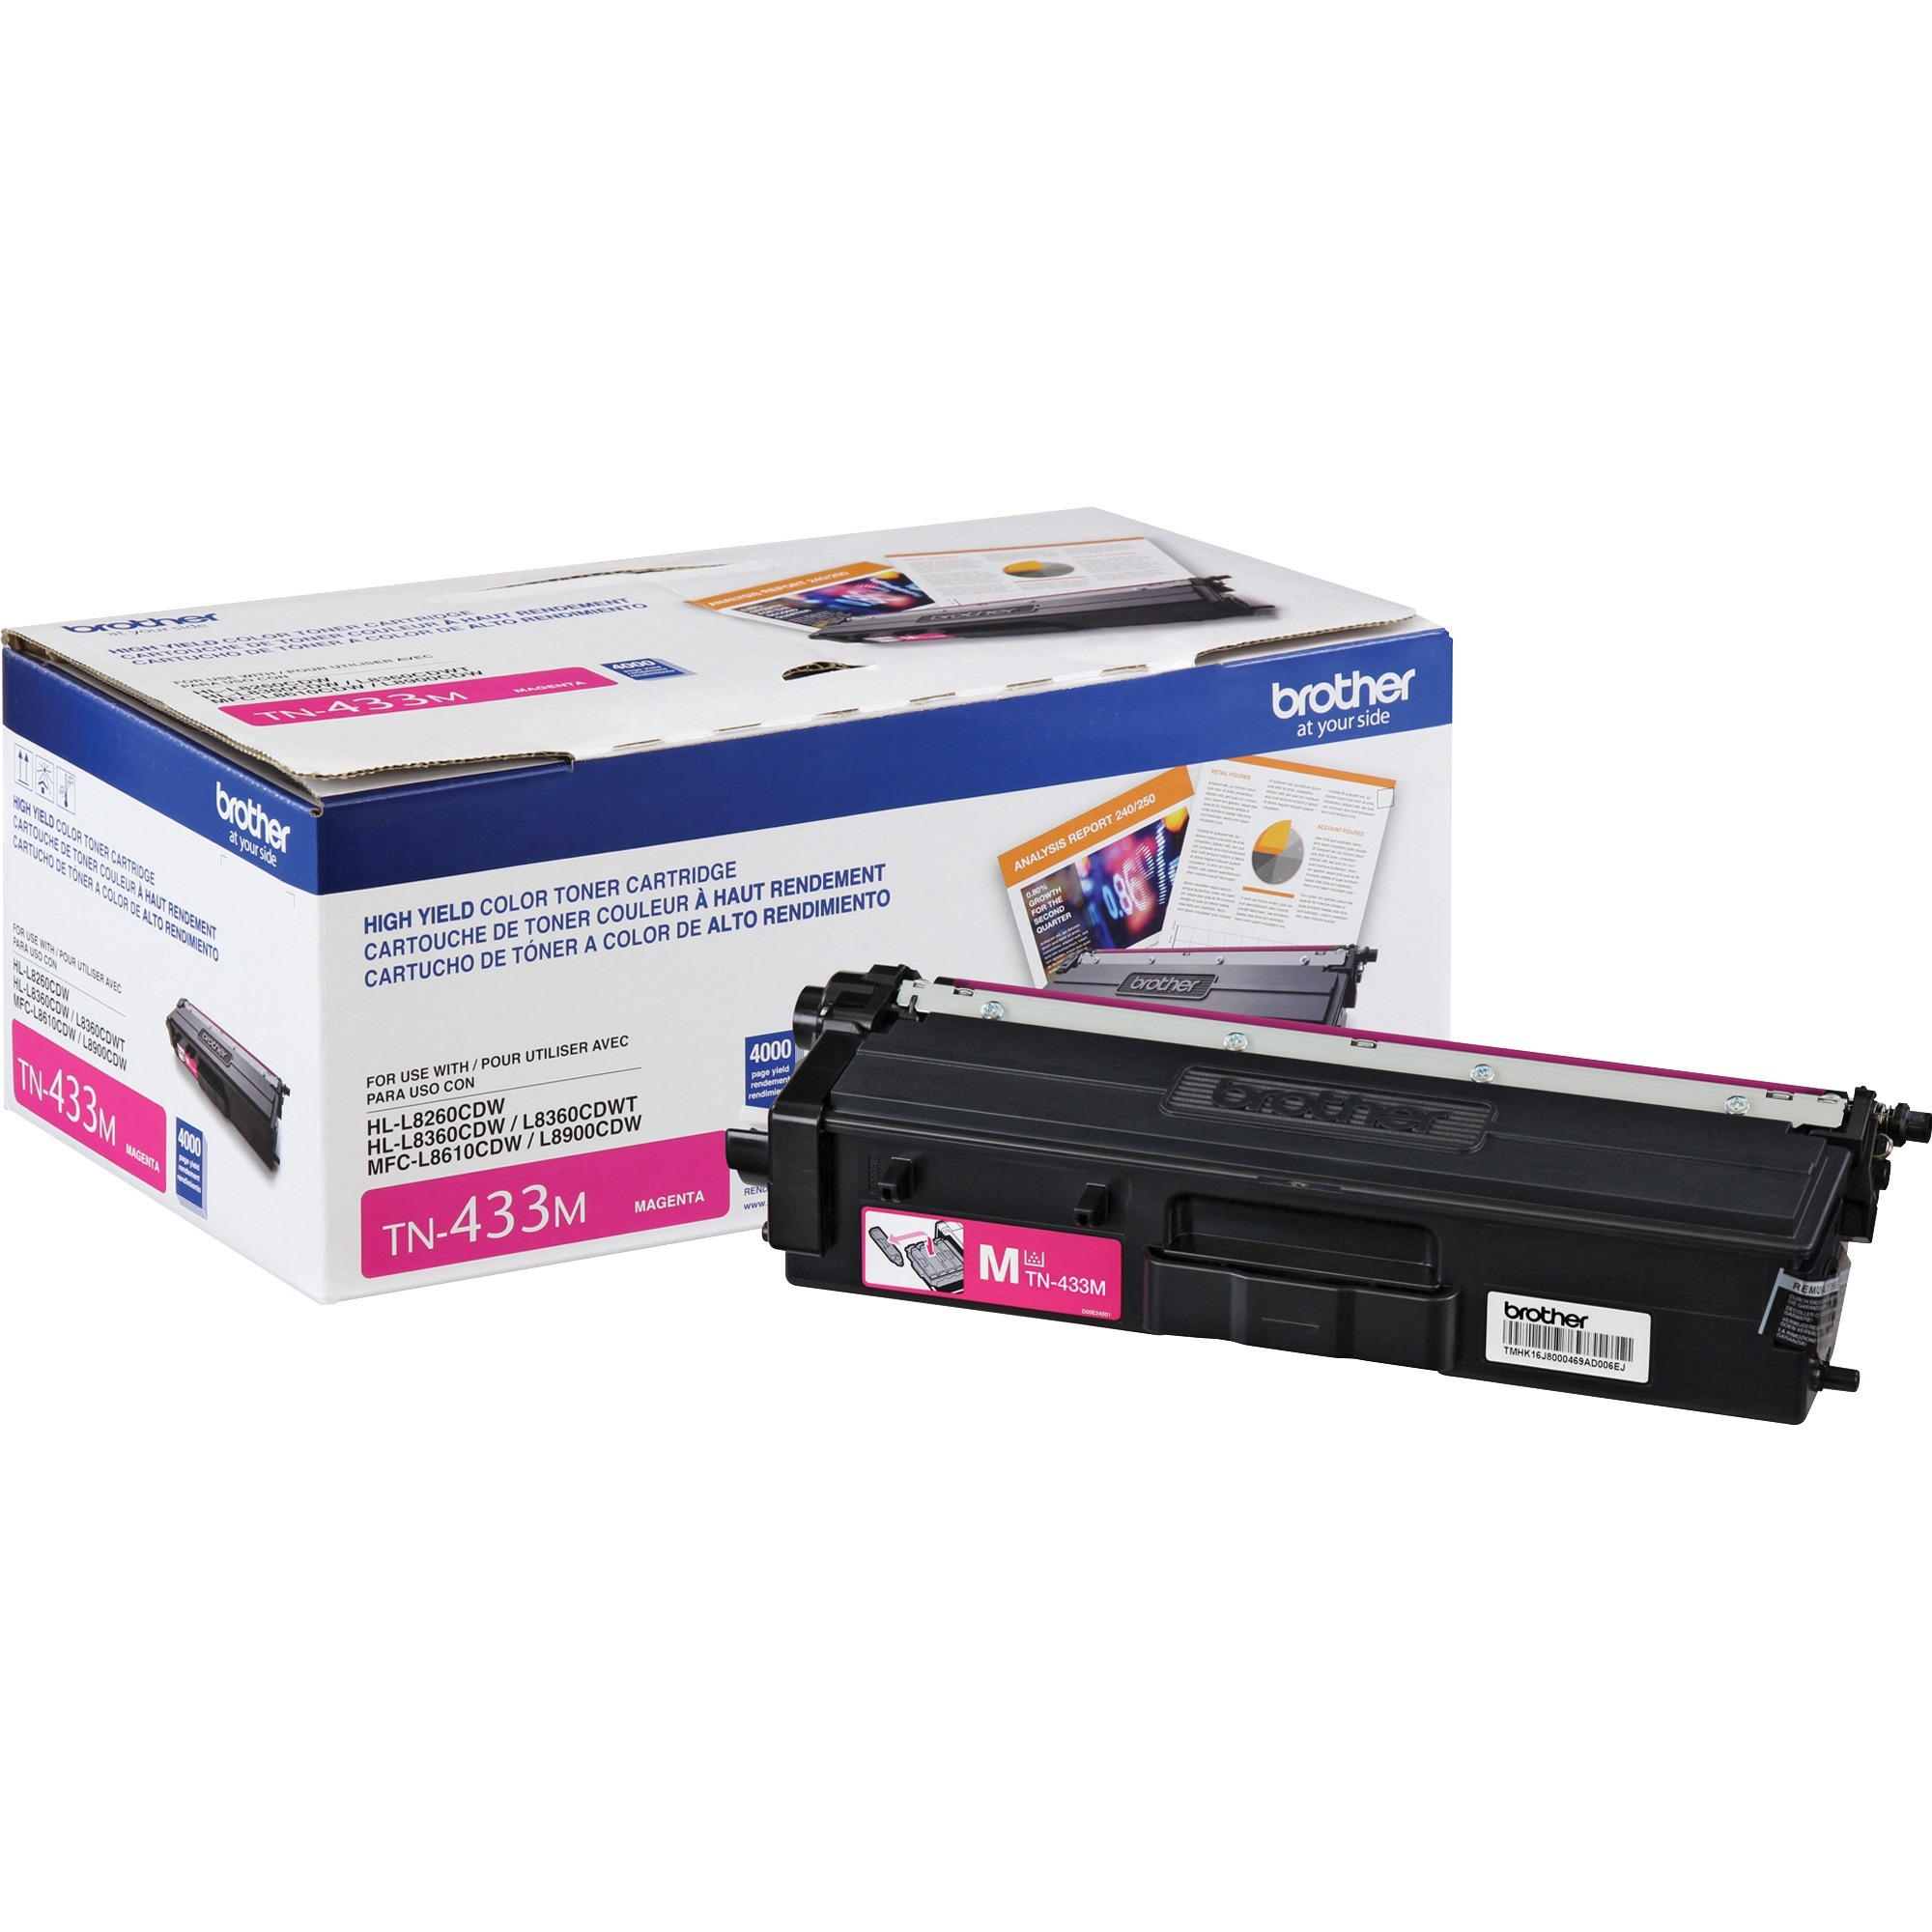 Brother, BRTTN433M, TN433M Toner Cartridge, 1 Each